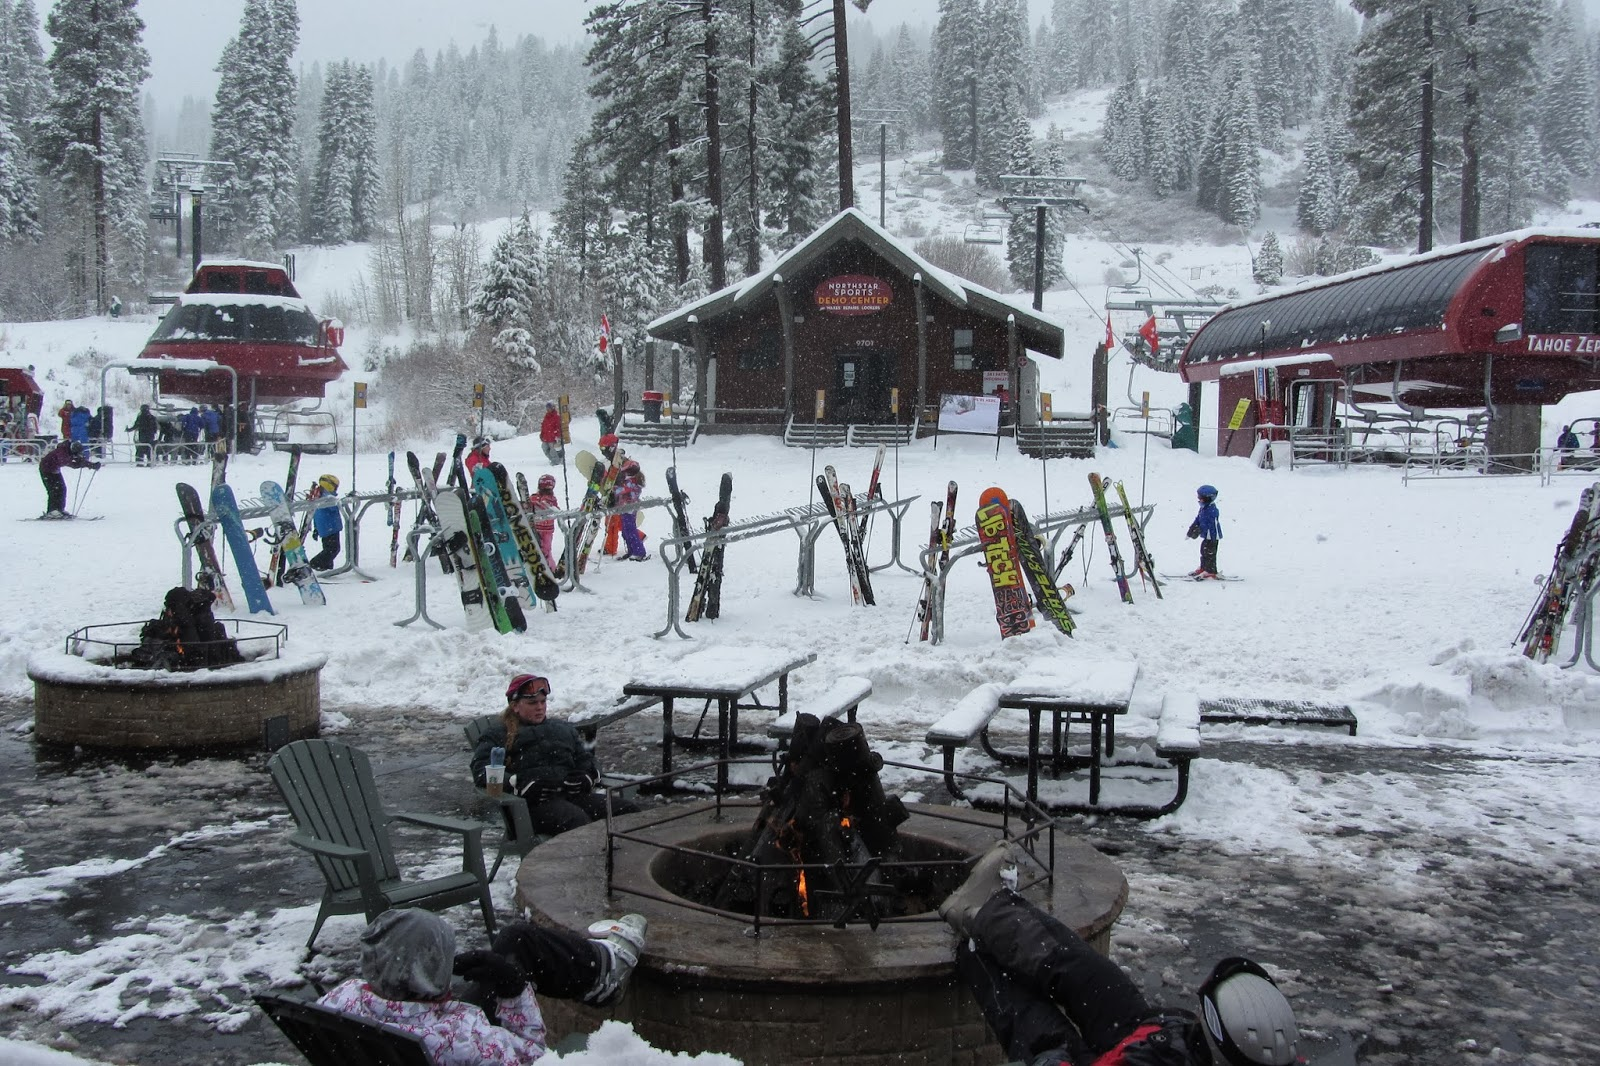 Snowboarder dies at Heavenly Lake Tahoe